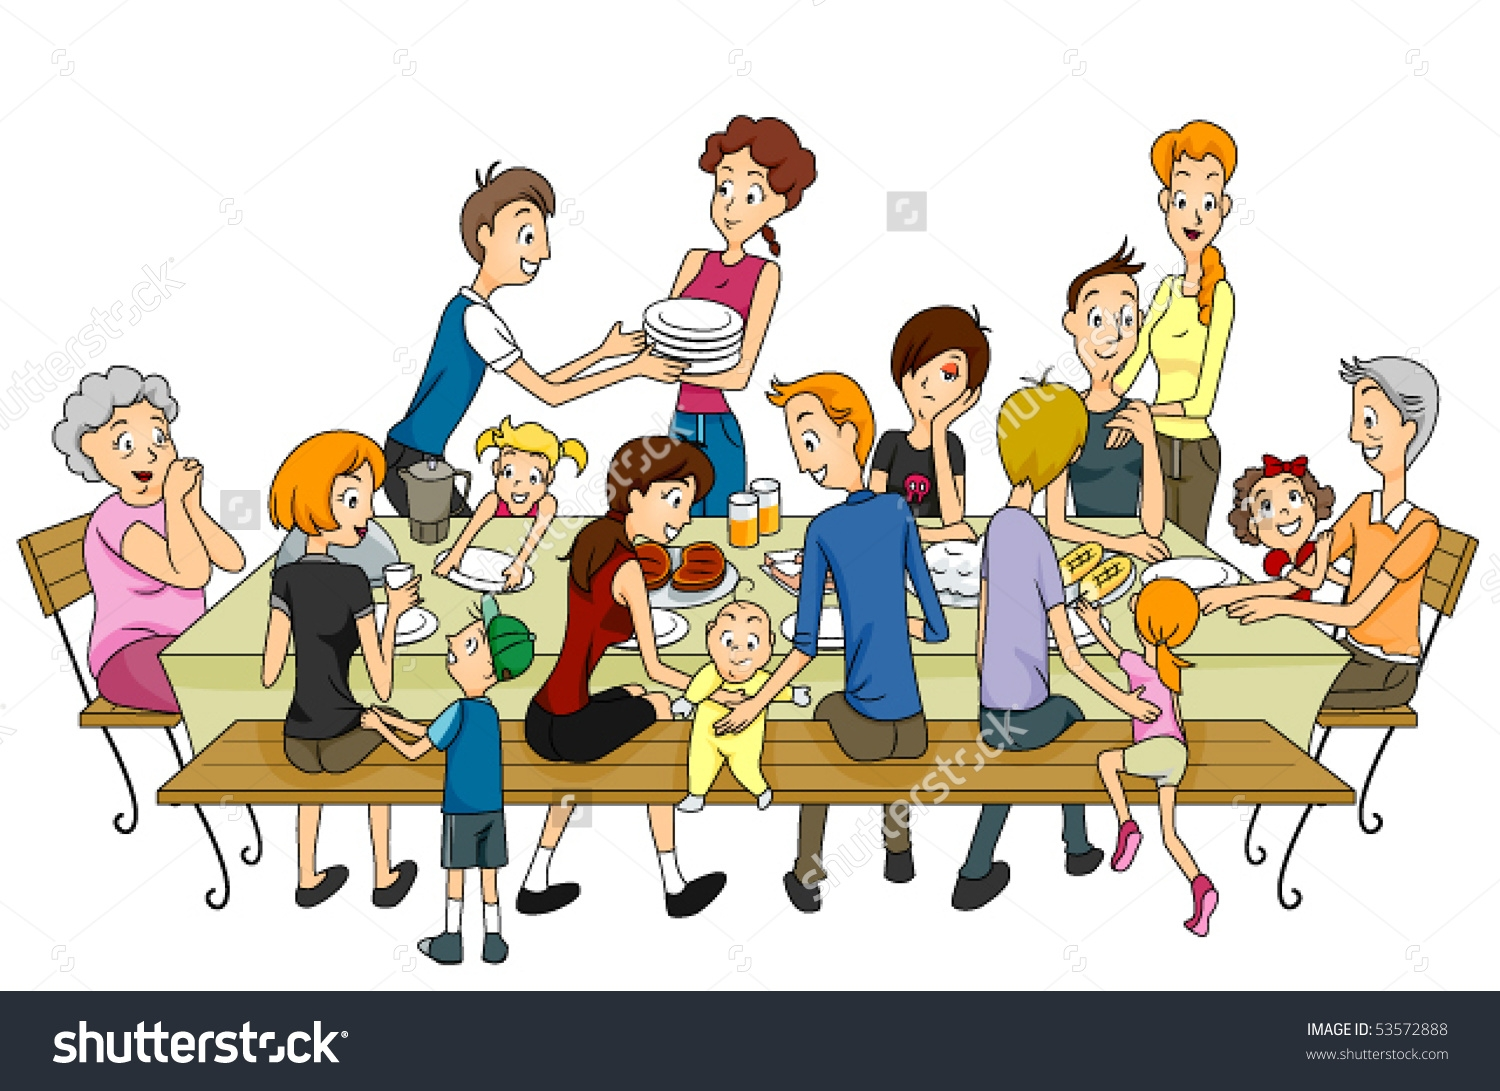 Collection of 14 free Reunion clipart family gathering aztec clipart.